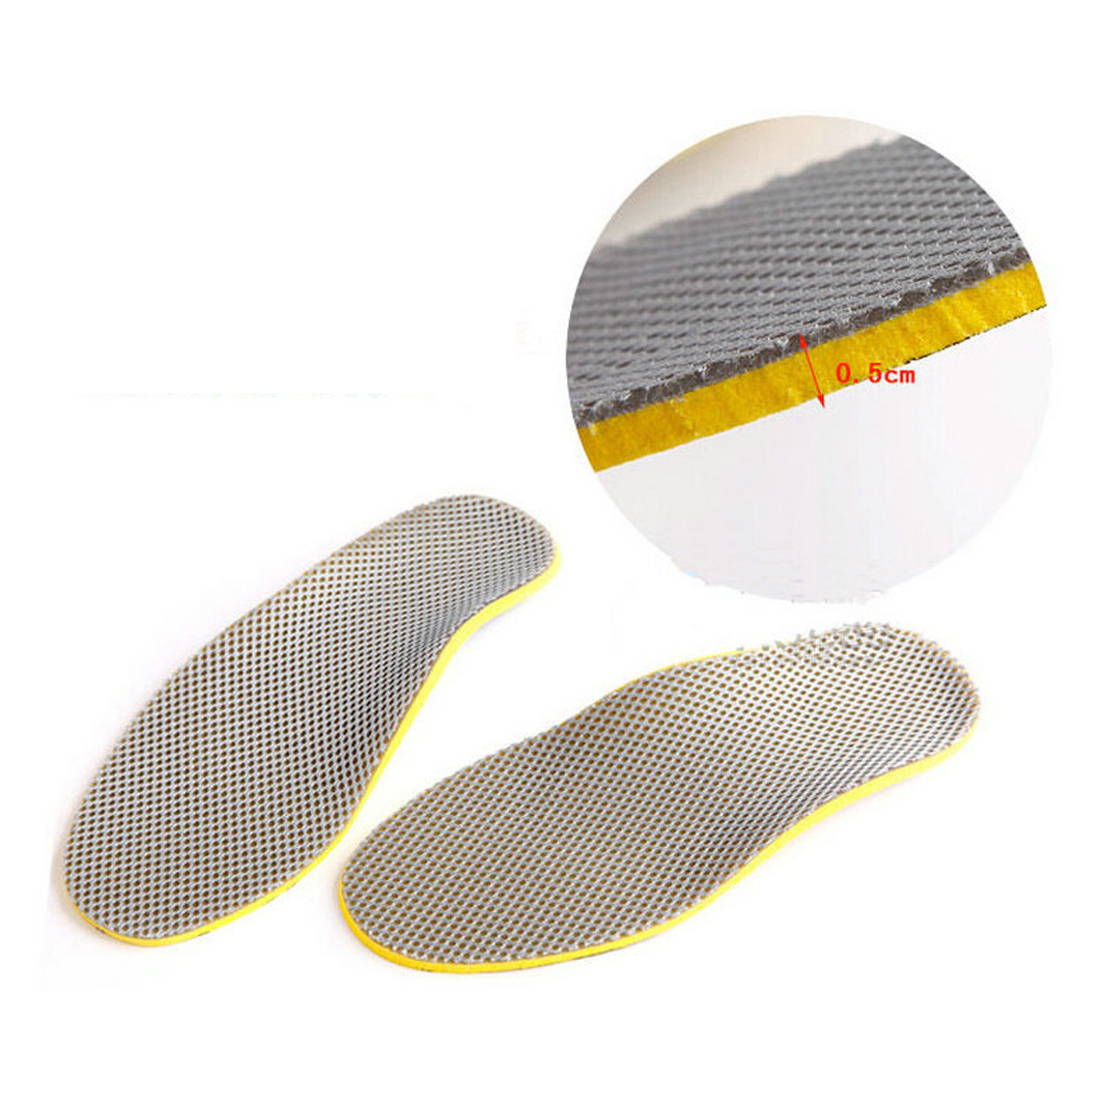 New Male/Female PU Orthopedic Insoles 3D Plantar Orthotic Arch Support Insoles High Arch Flat Foot Shoe Pad Shoes Insert